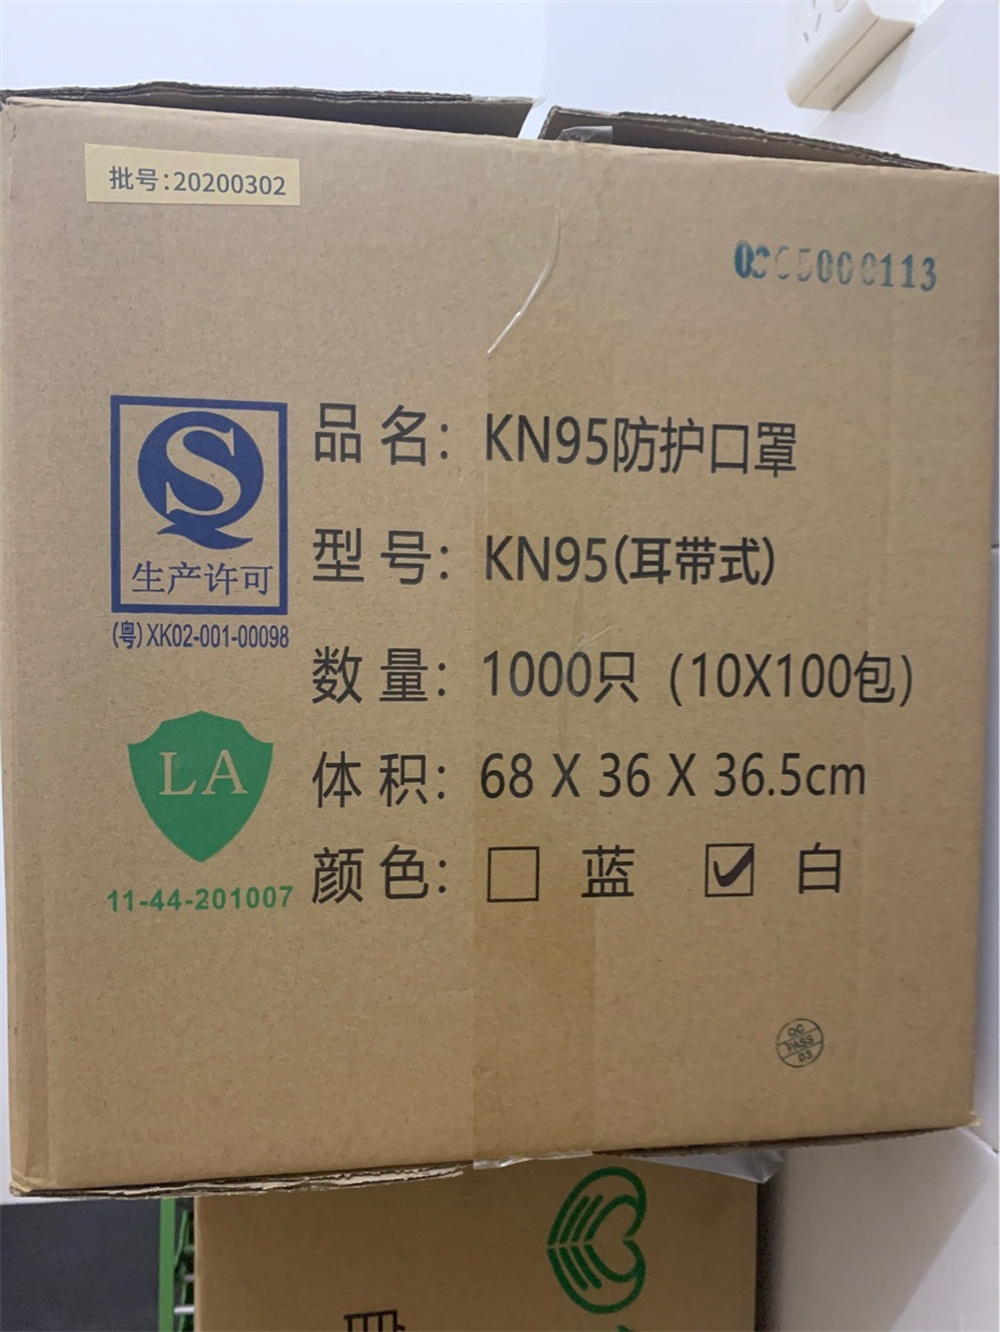 POWECOM KN95 Particulate Respirator FDA Authorized Anti Pollution PM2.5 Dust Face Mask 10Pcs/ Pack 7